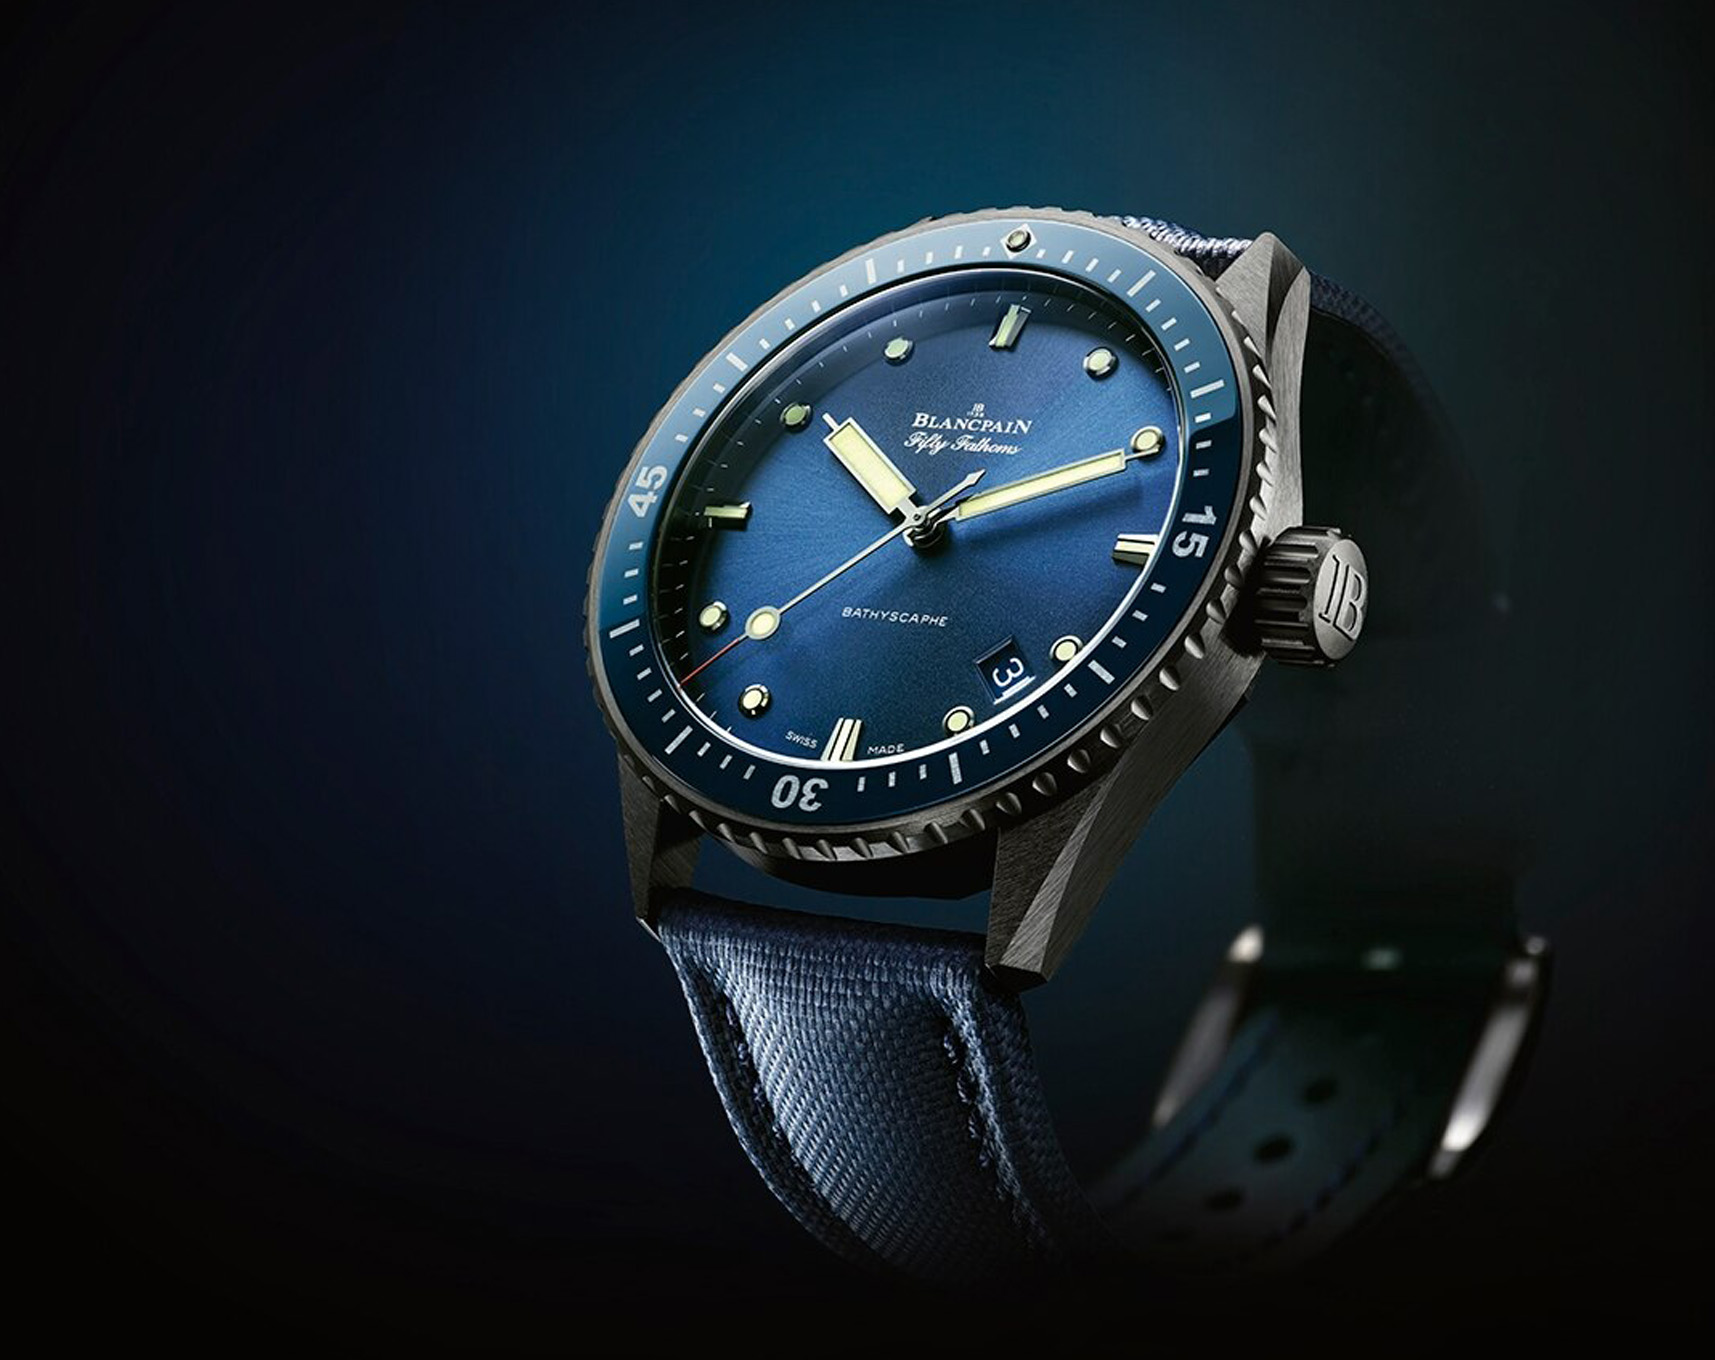 Blancpain - Collection Fifty Fathoms - Valer Nice